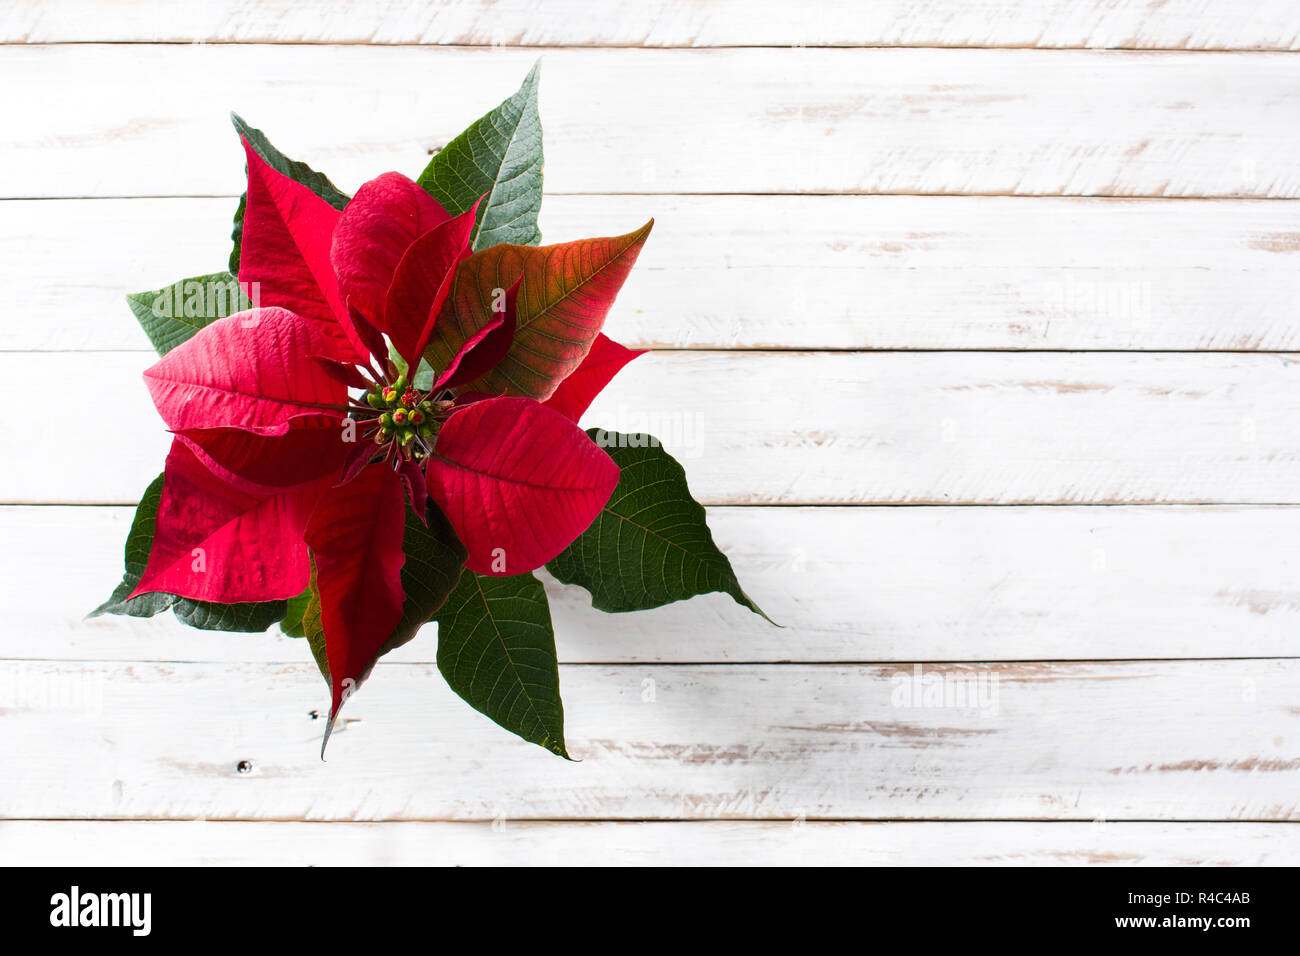 Christmas poinsettia flower on white wooden table. Top view. Copyspace - Stock Image